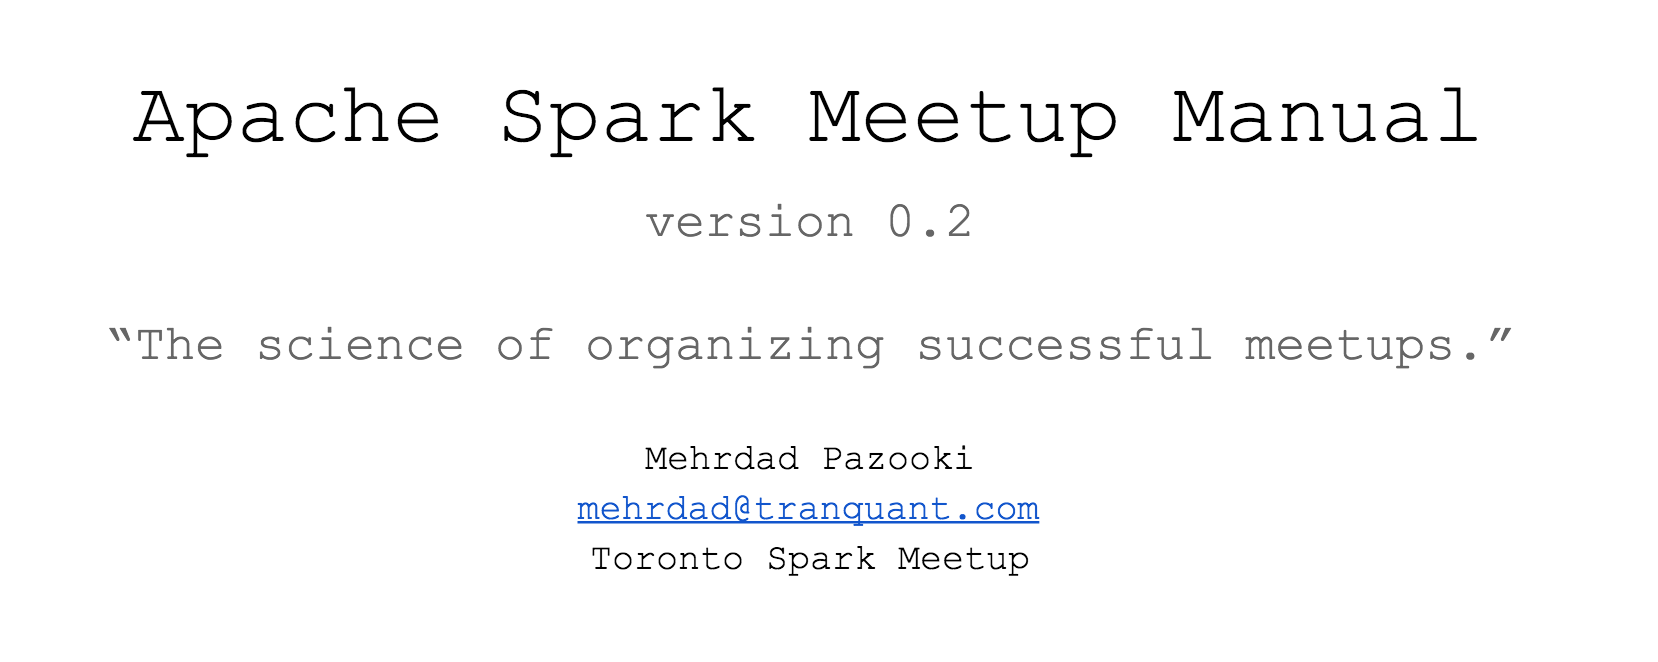 apache_spark_meetup_manual